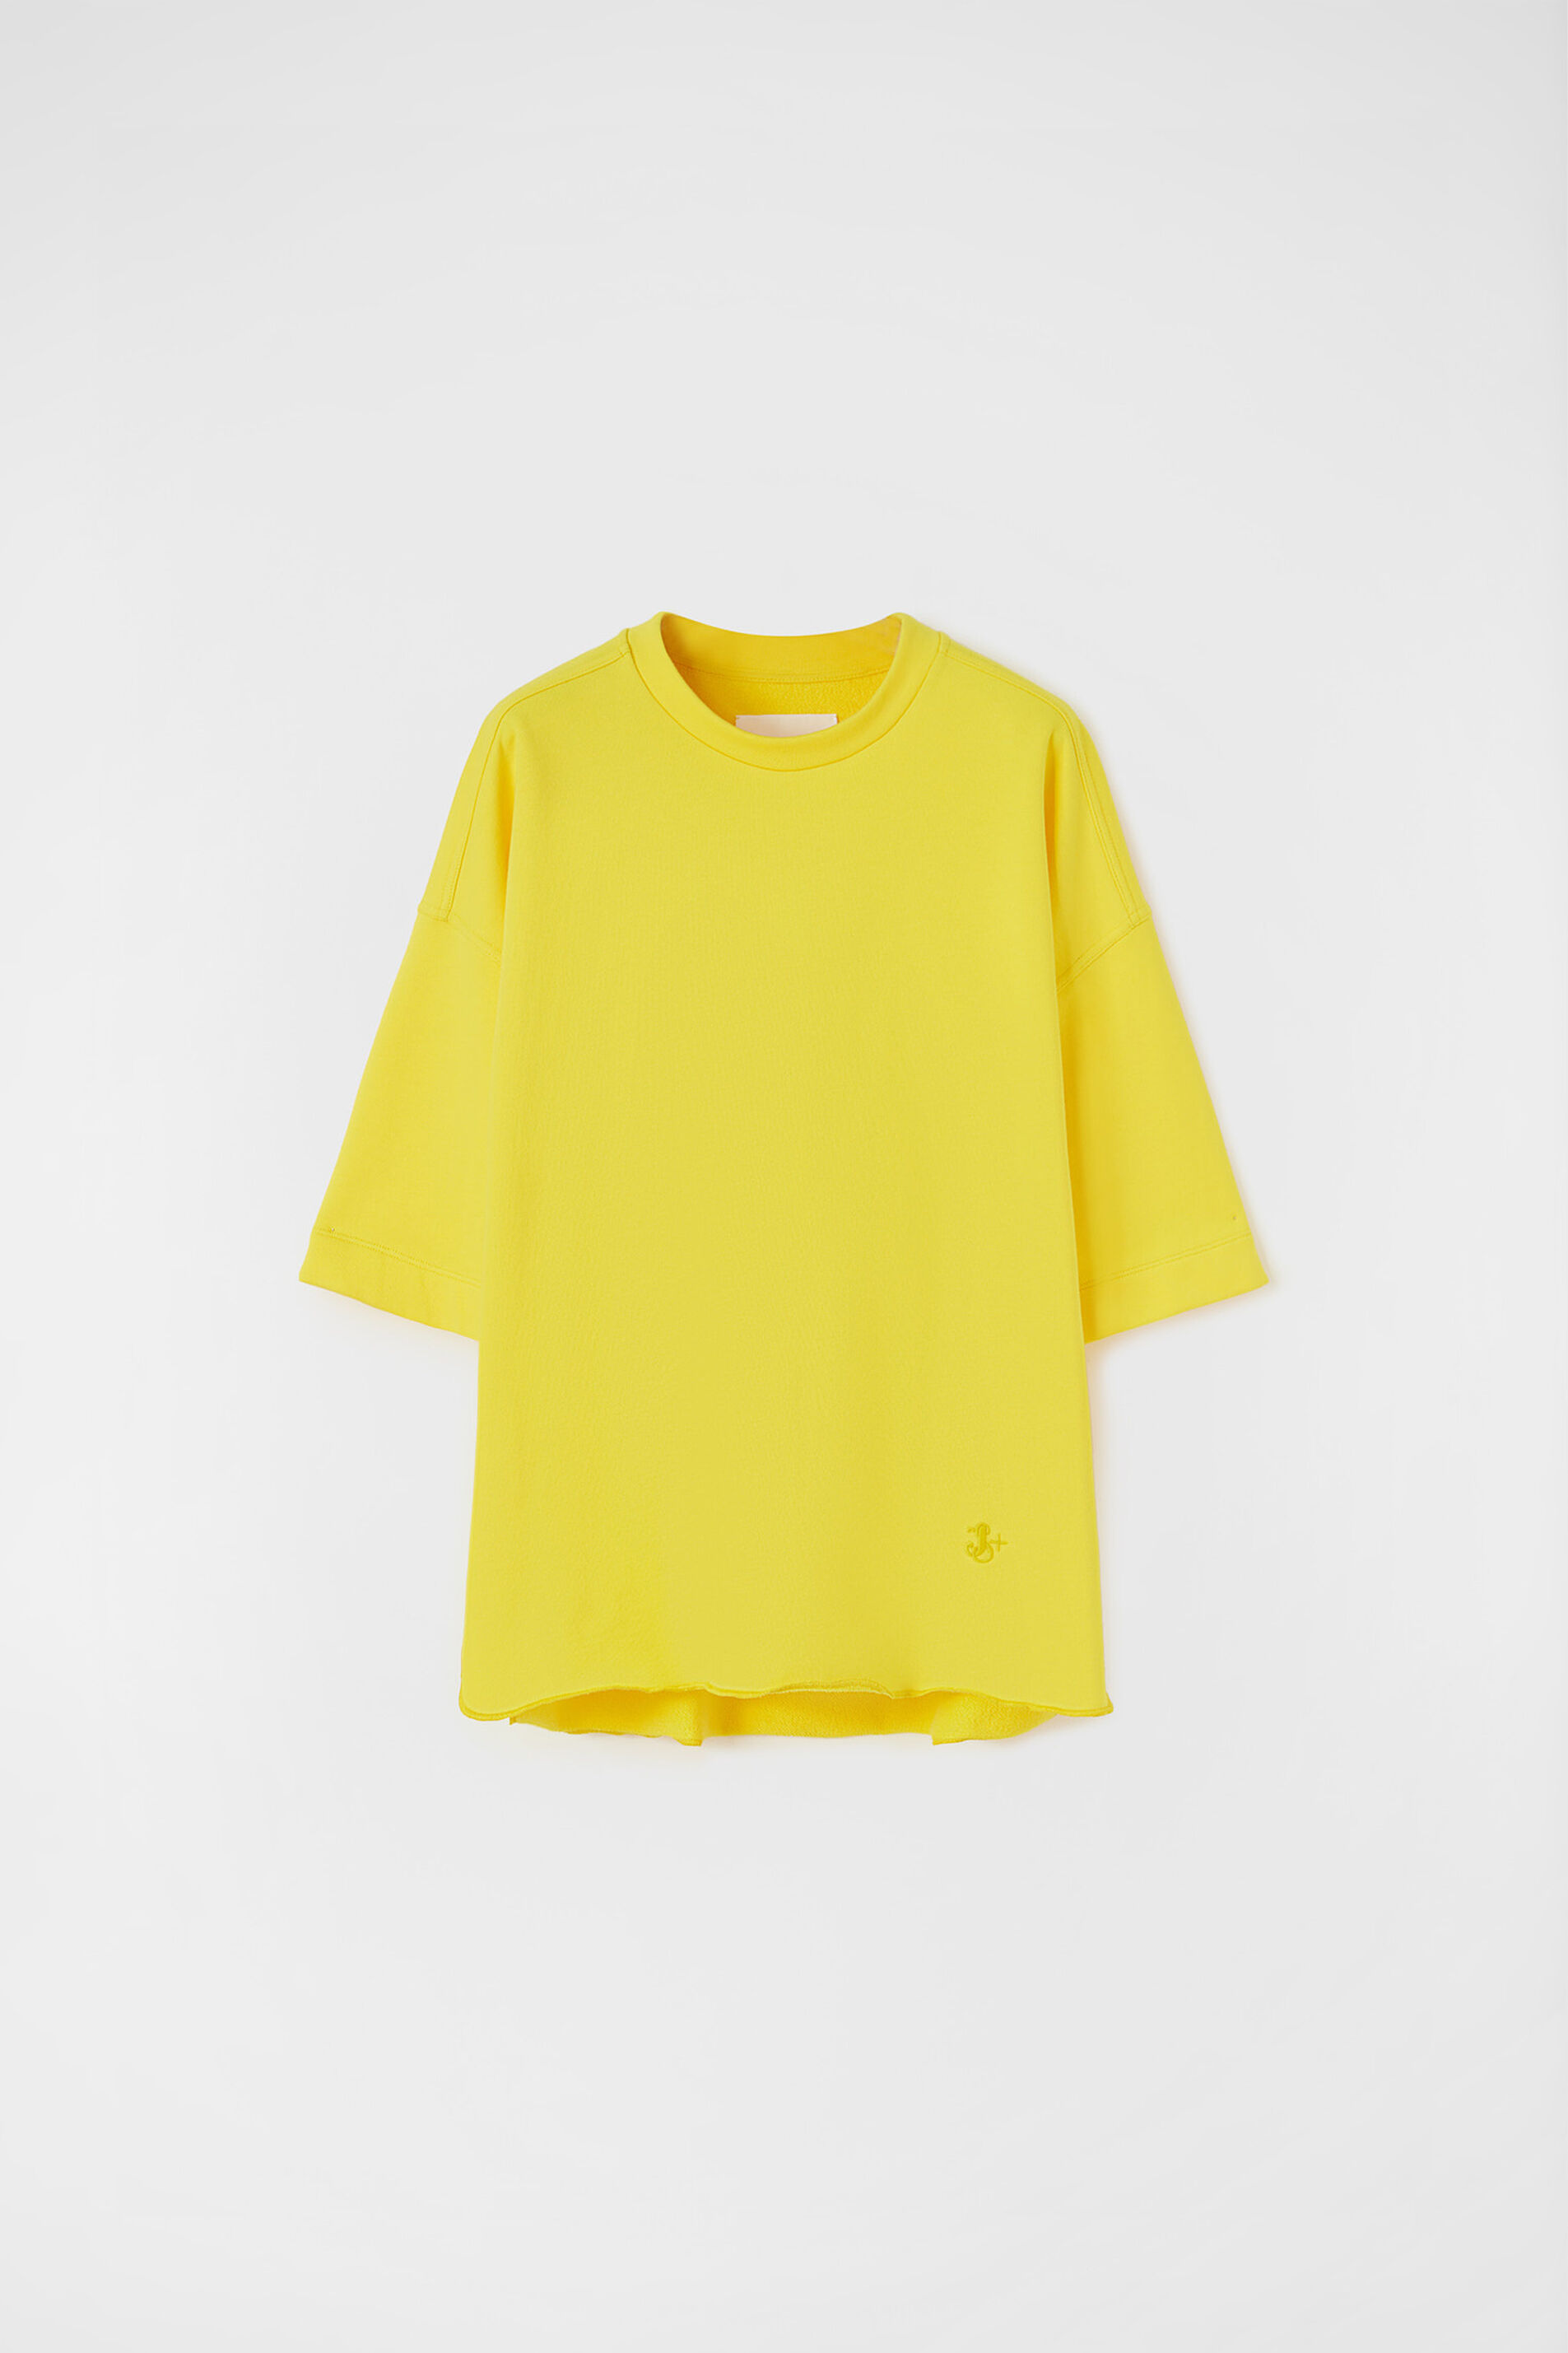 Sweatshirt, yellow, large